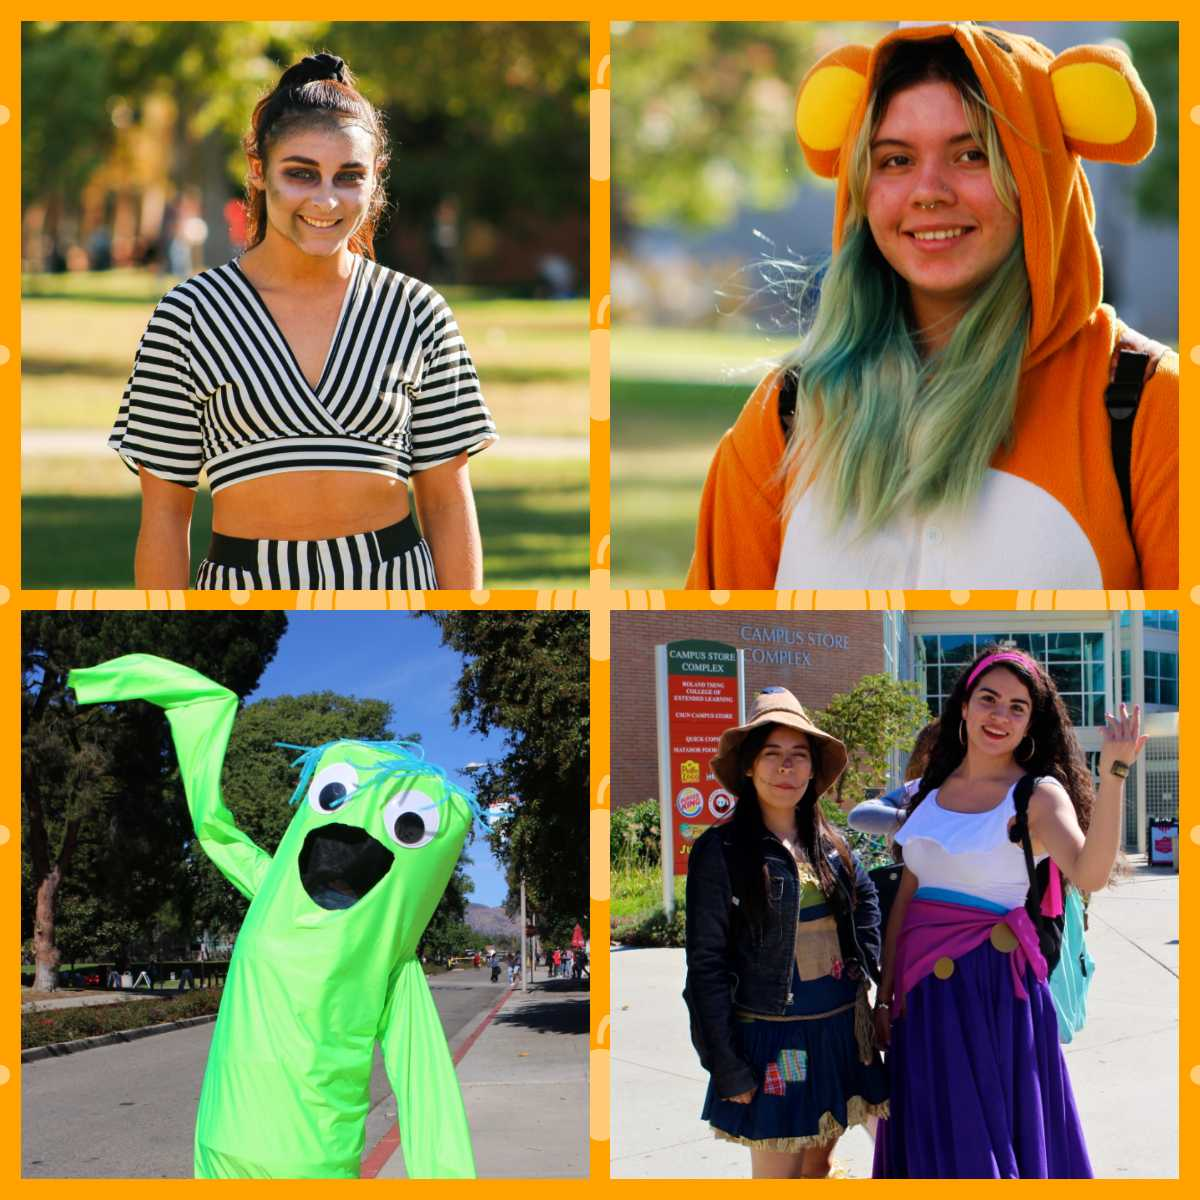 A collage of costumed students featured below. Photo Credits: Max Sullivan and Yomira Saiqui.